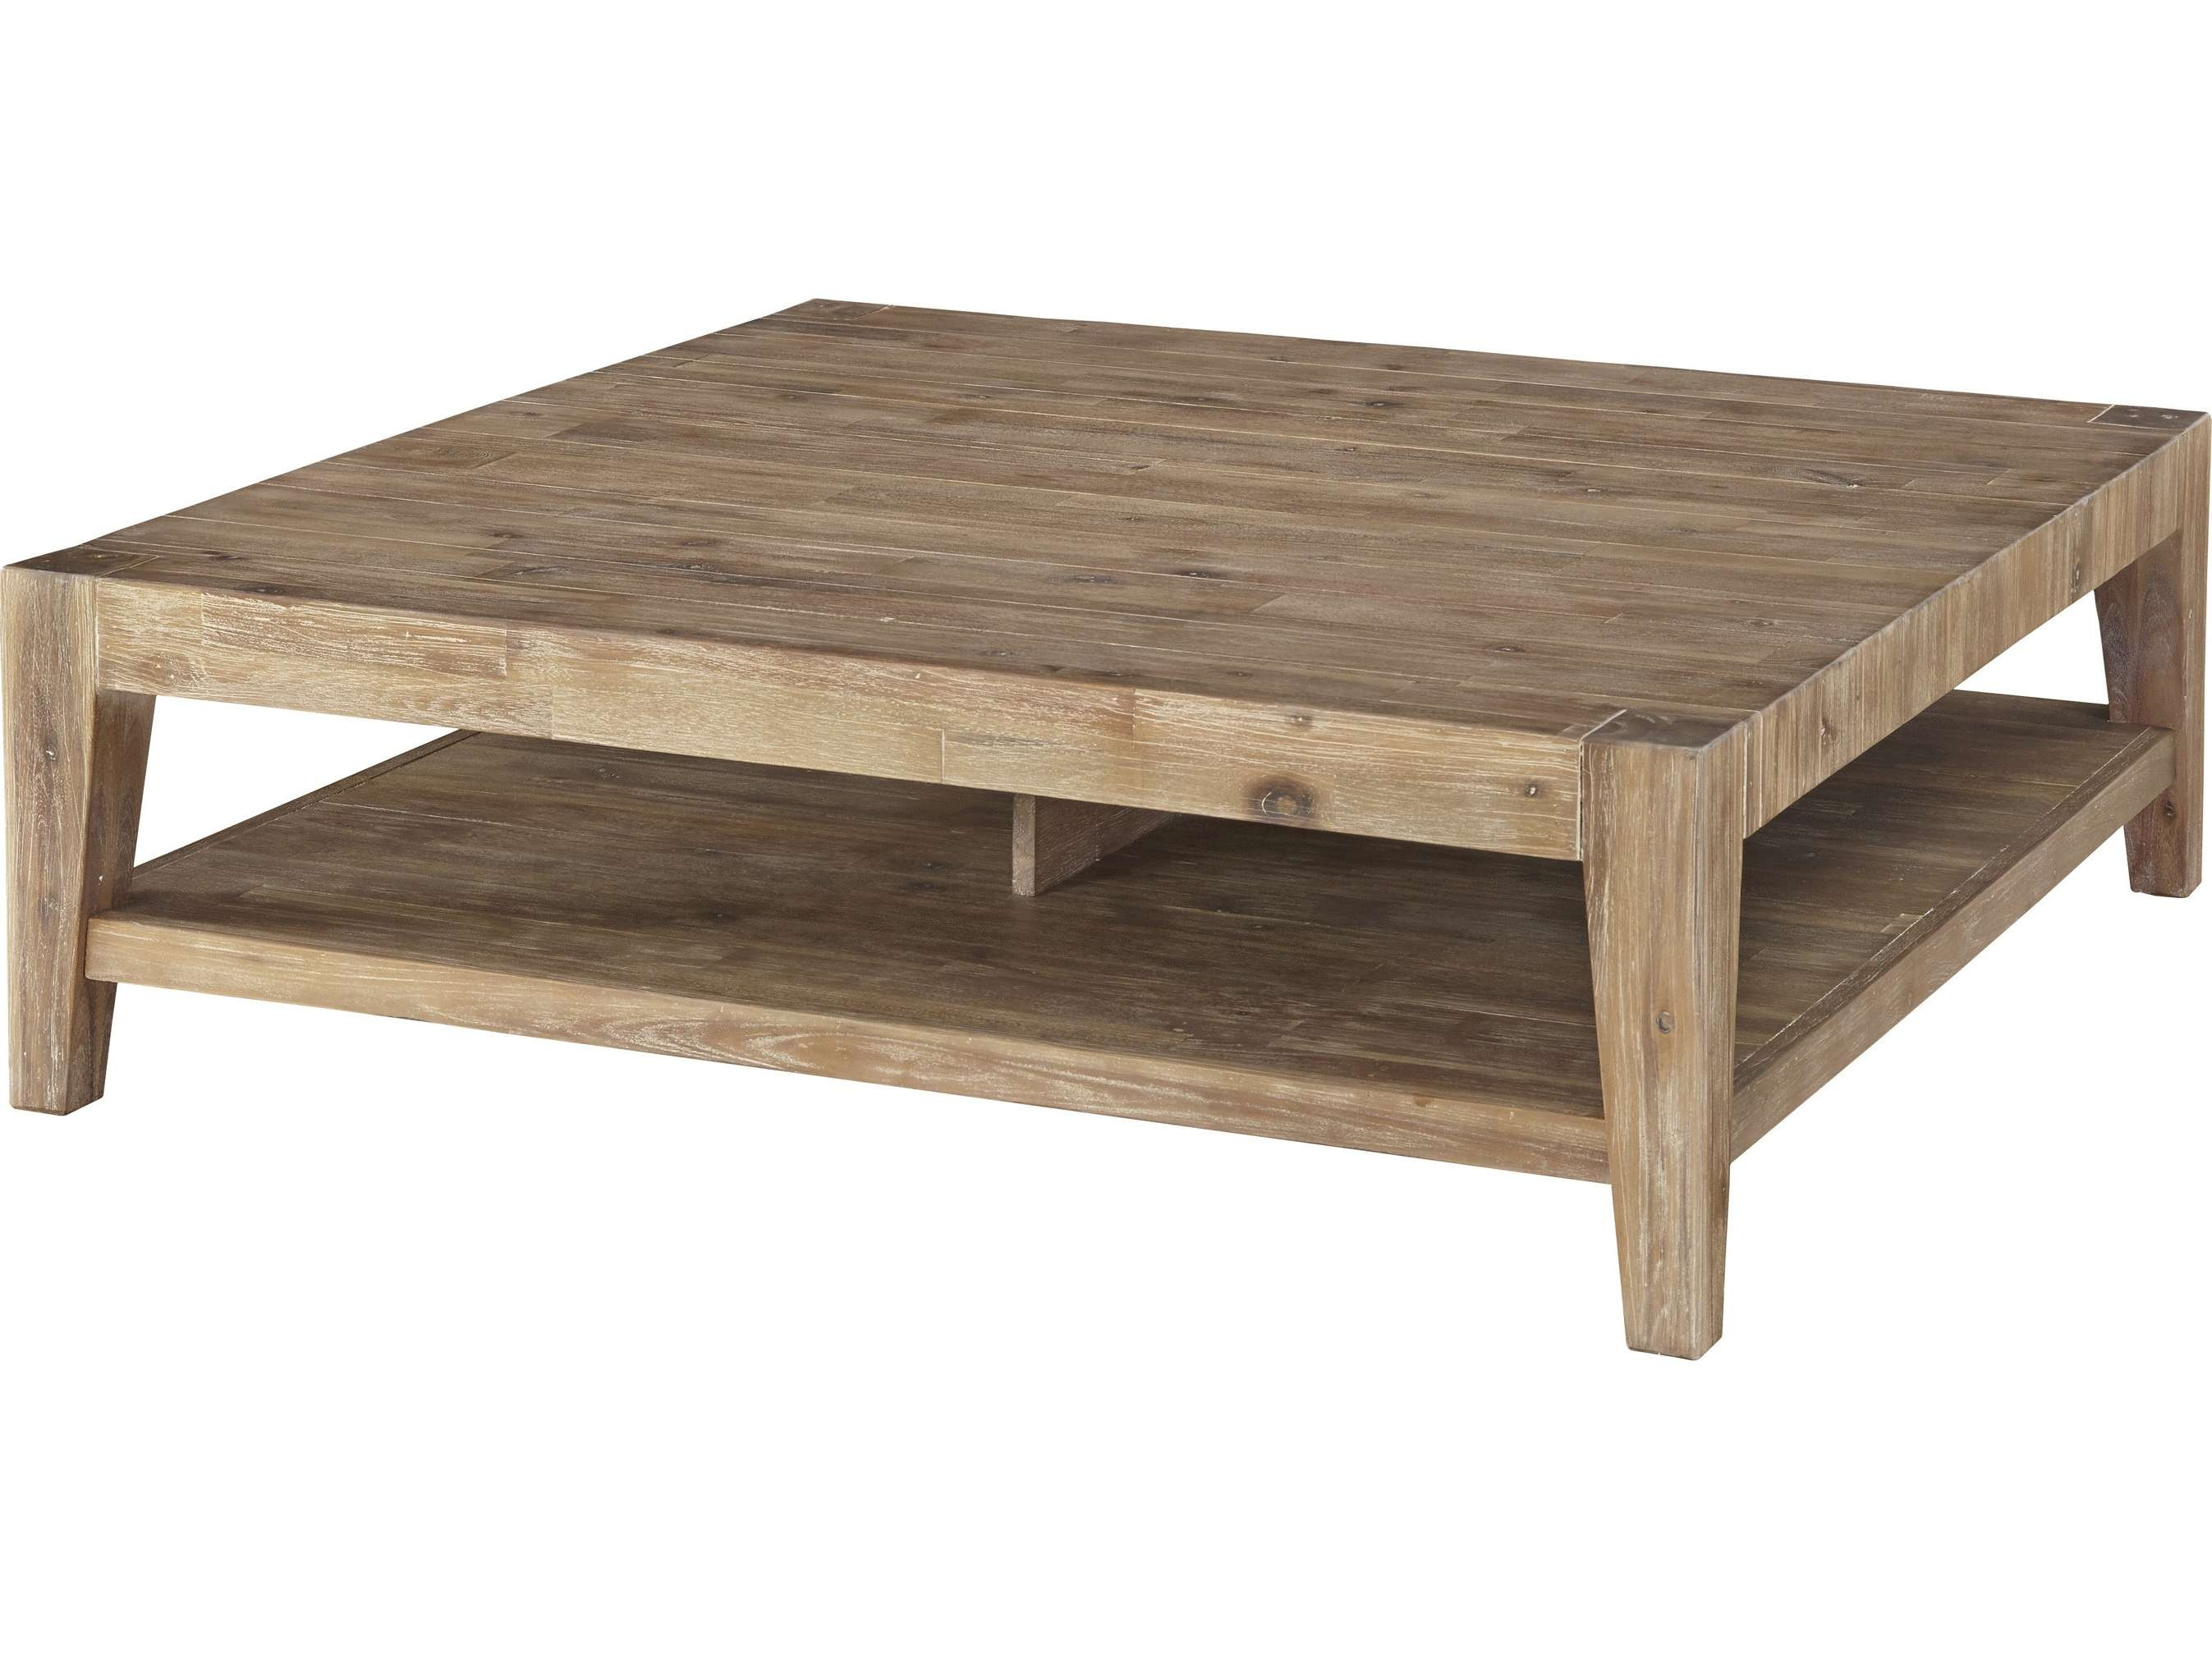 Coffee Tables : Square Coffee Tables Living Room Table Cheap For Within Most Up To Date Large Low Square Coffee Tables (View 19 of 20)